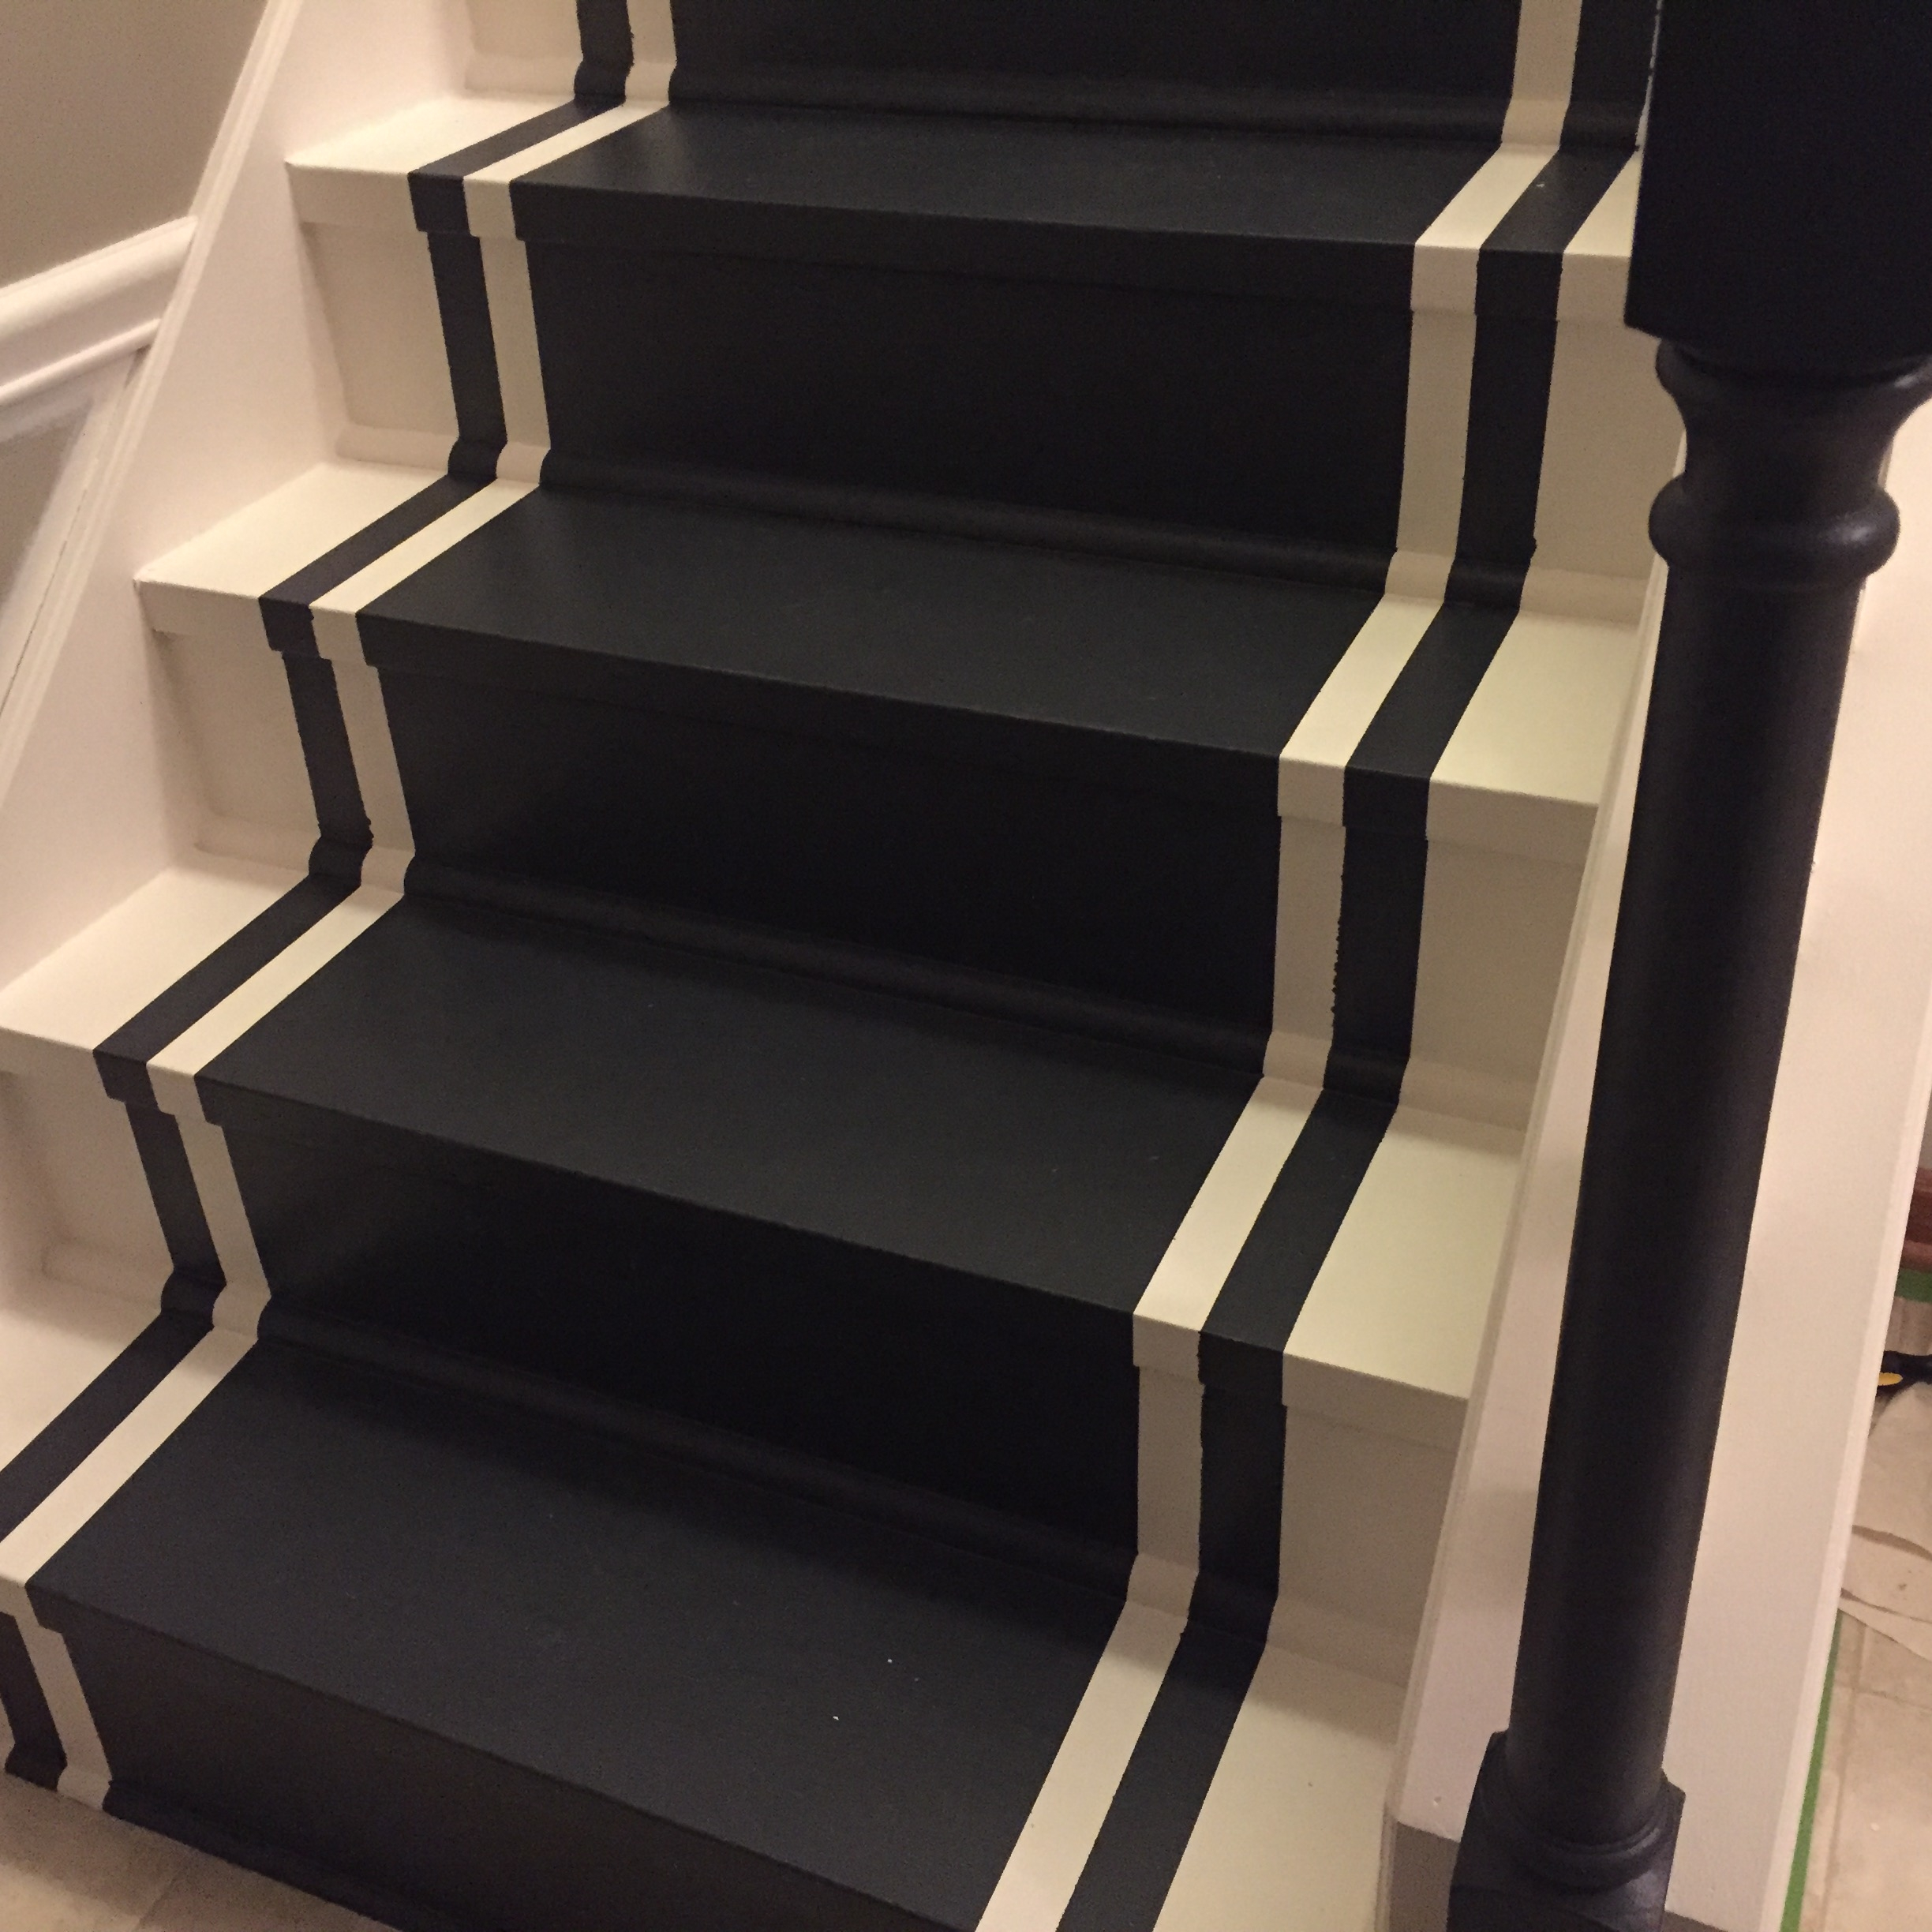 From Drab To Fab Diy Staircase Remodel — The Other Side Of Neutral   Refinishing Builder Grade Stairs   Diy   Basement Stairs   Staircase Makeover   Flooring   Carpeted Stairs